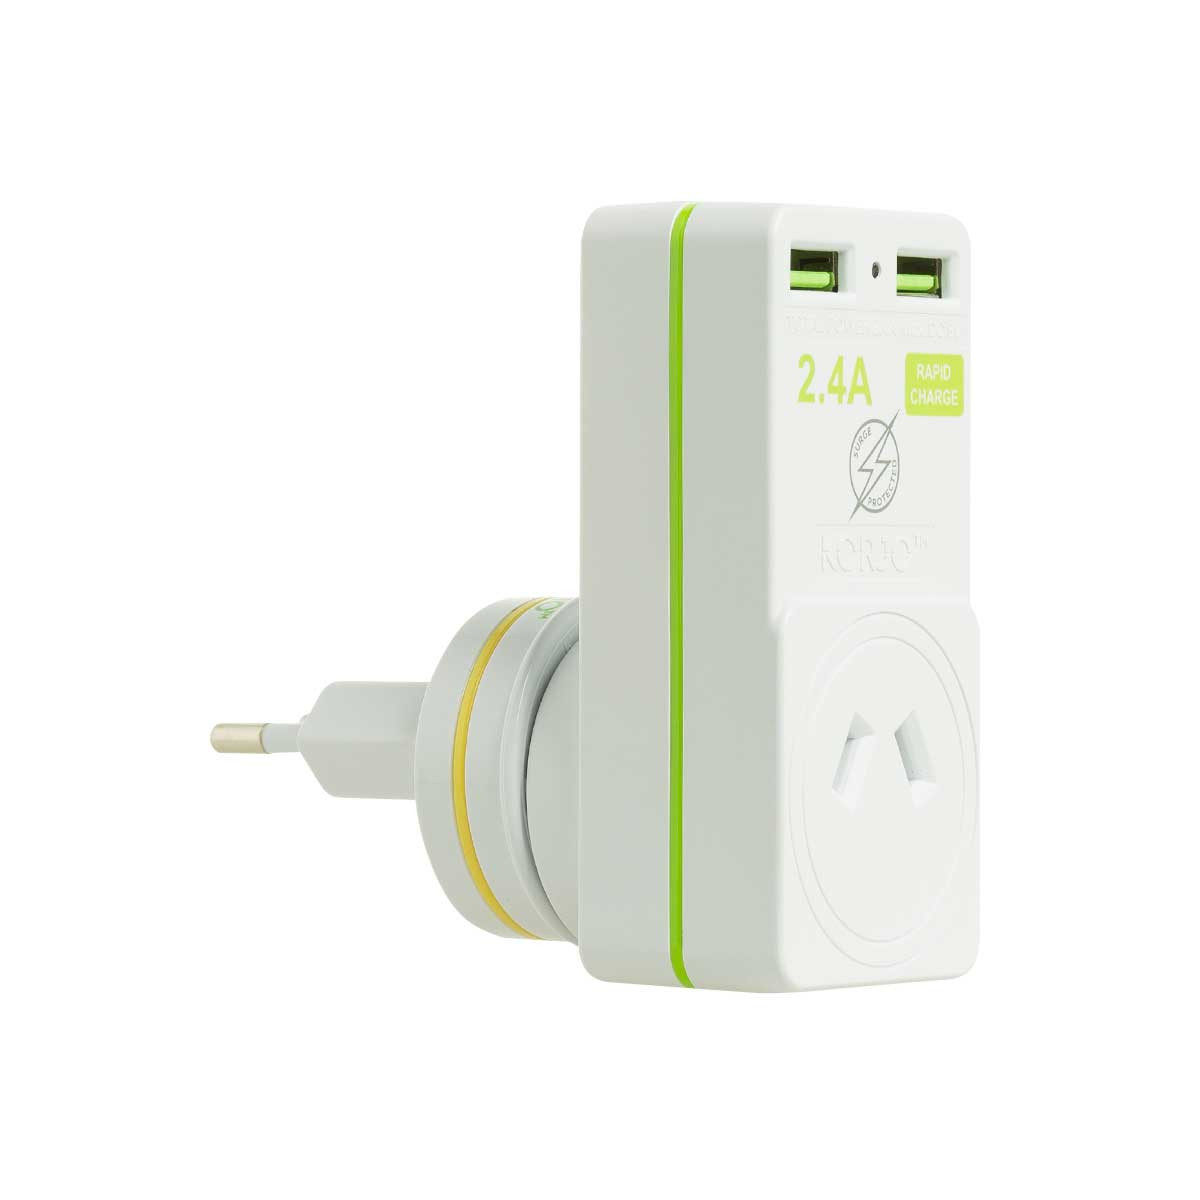 Korjo 2 port USB charger and adaptor Australia and NZ to Italy, Switzerland